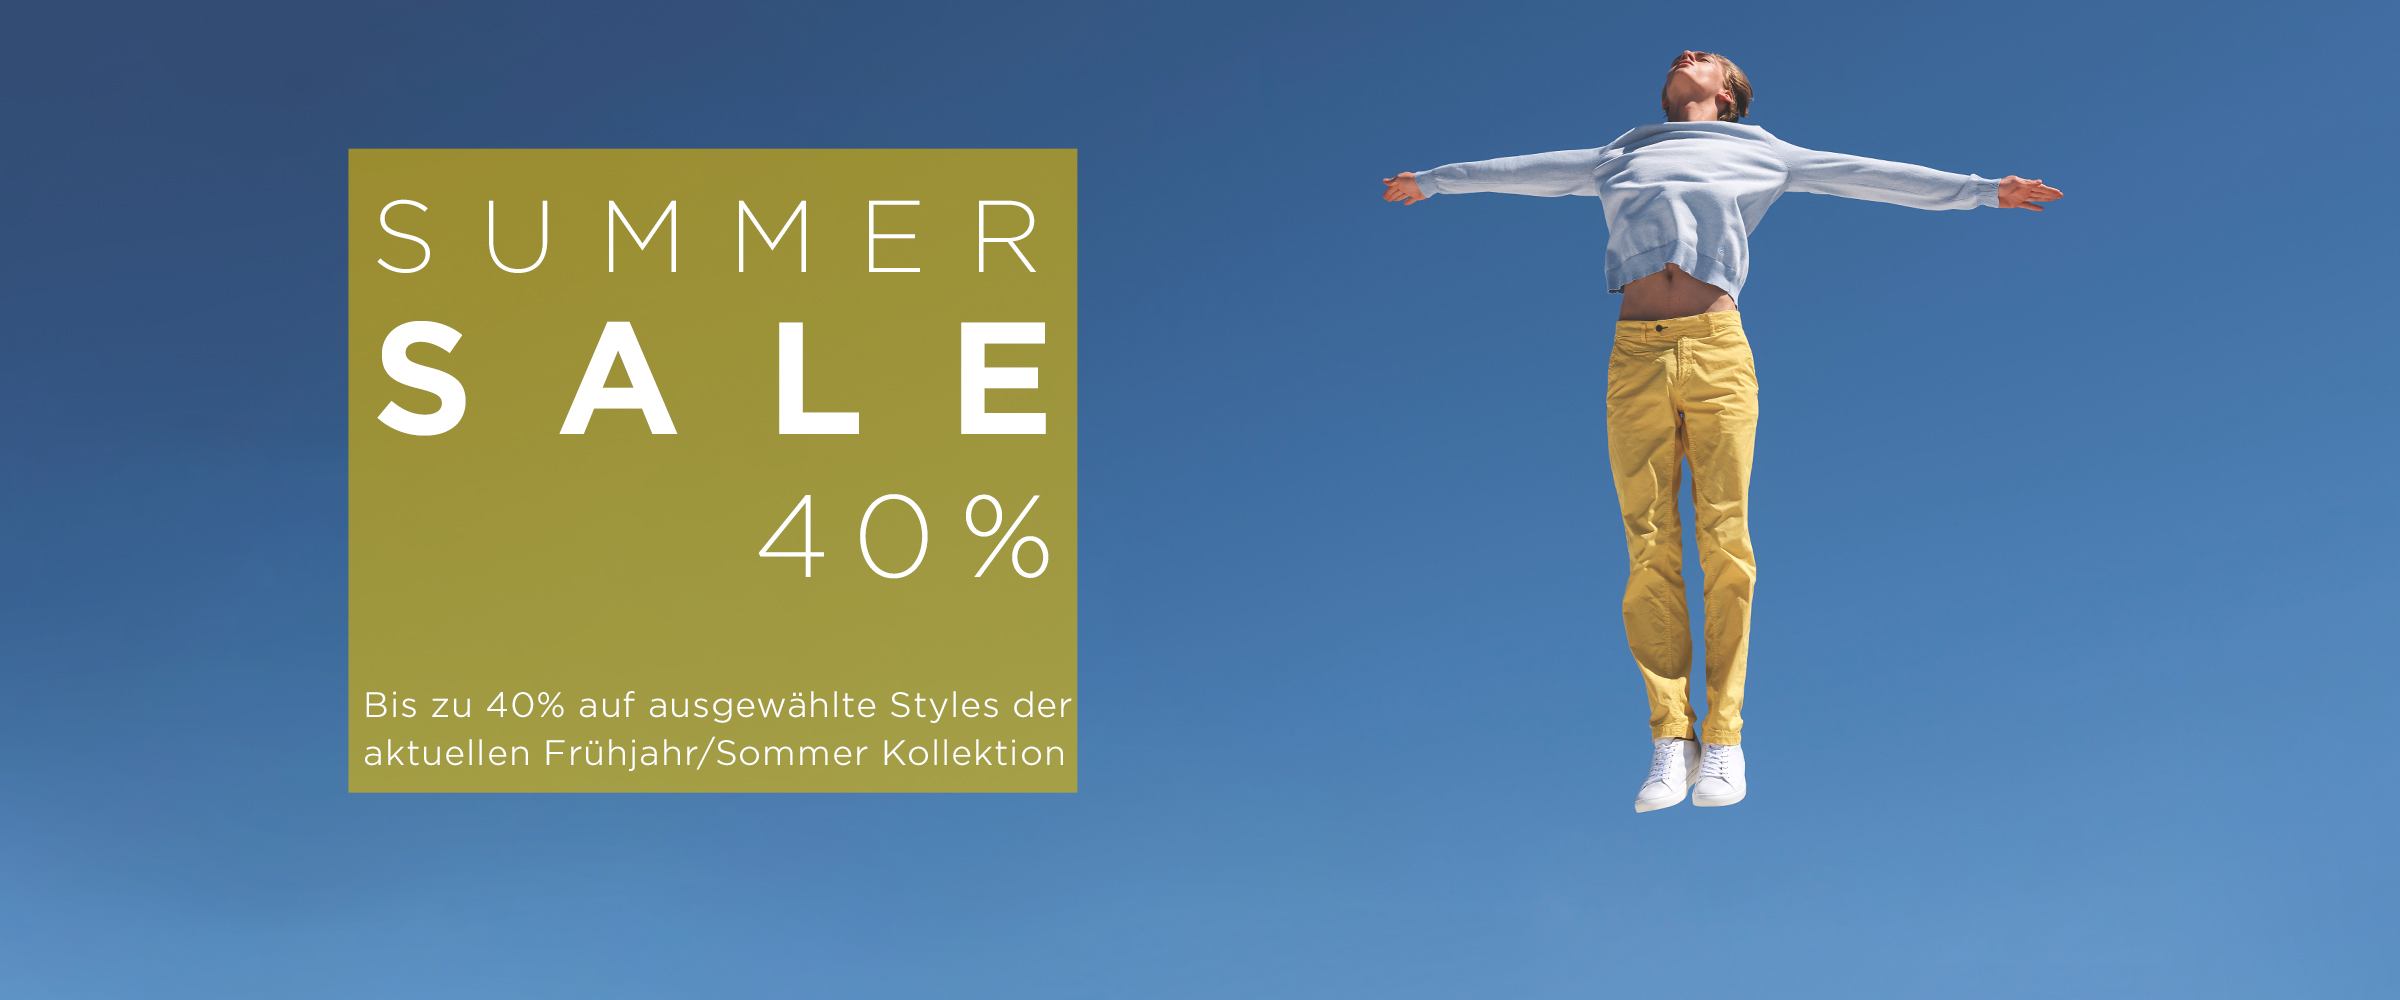 Summer Sale bei Bogner